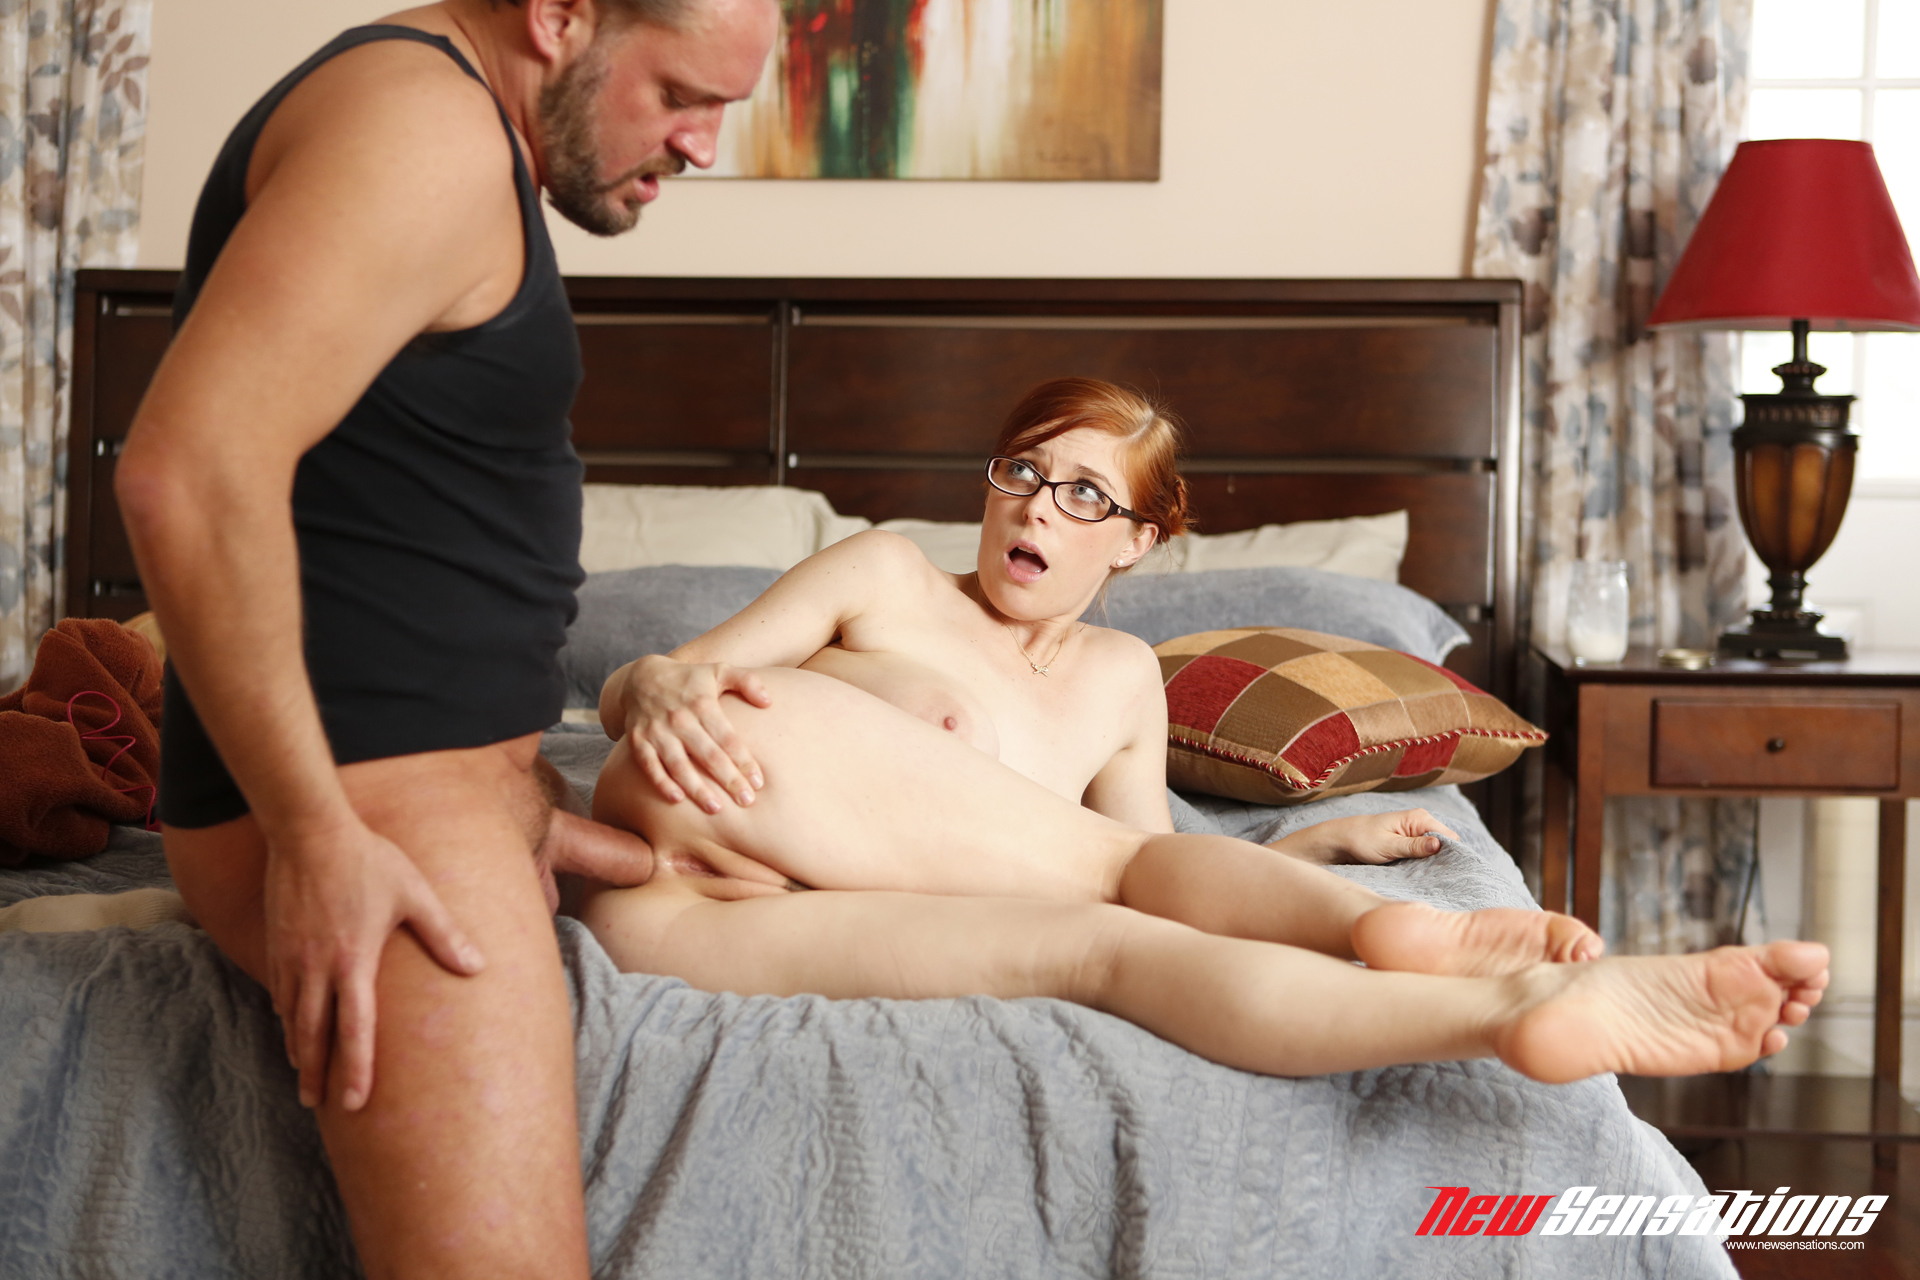 Alec knight teaches friend039s step daughter 7